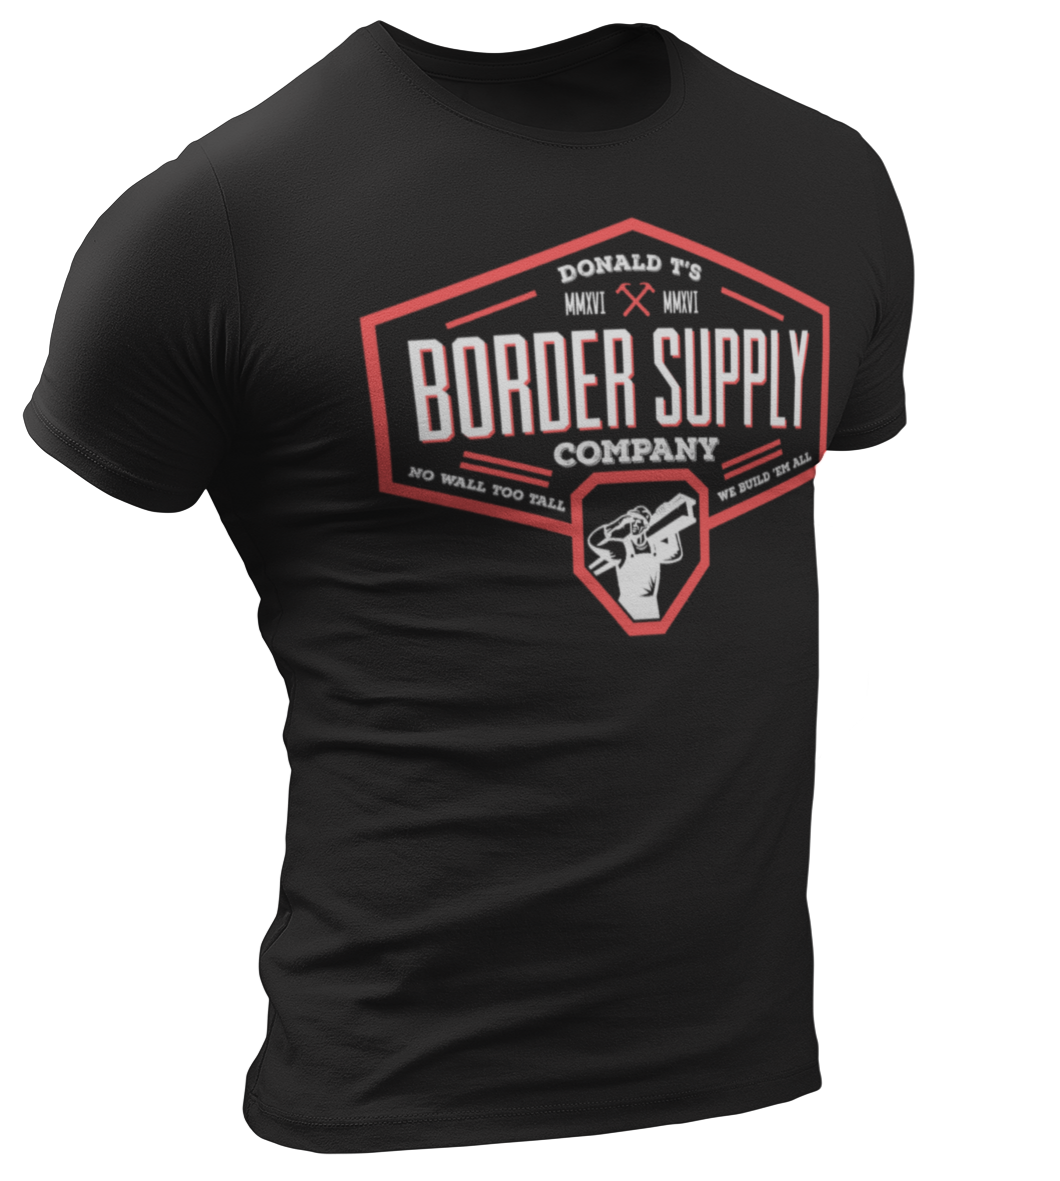 Border Supply Company Tee - Crusader Outlet